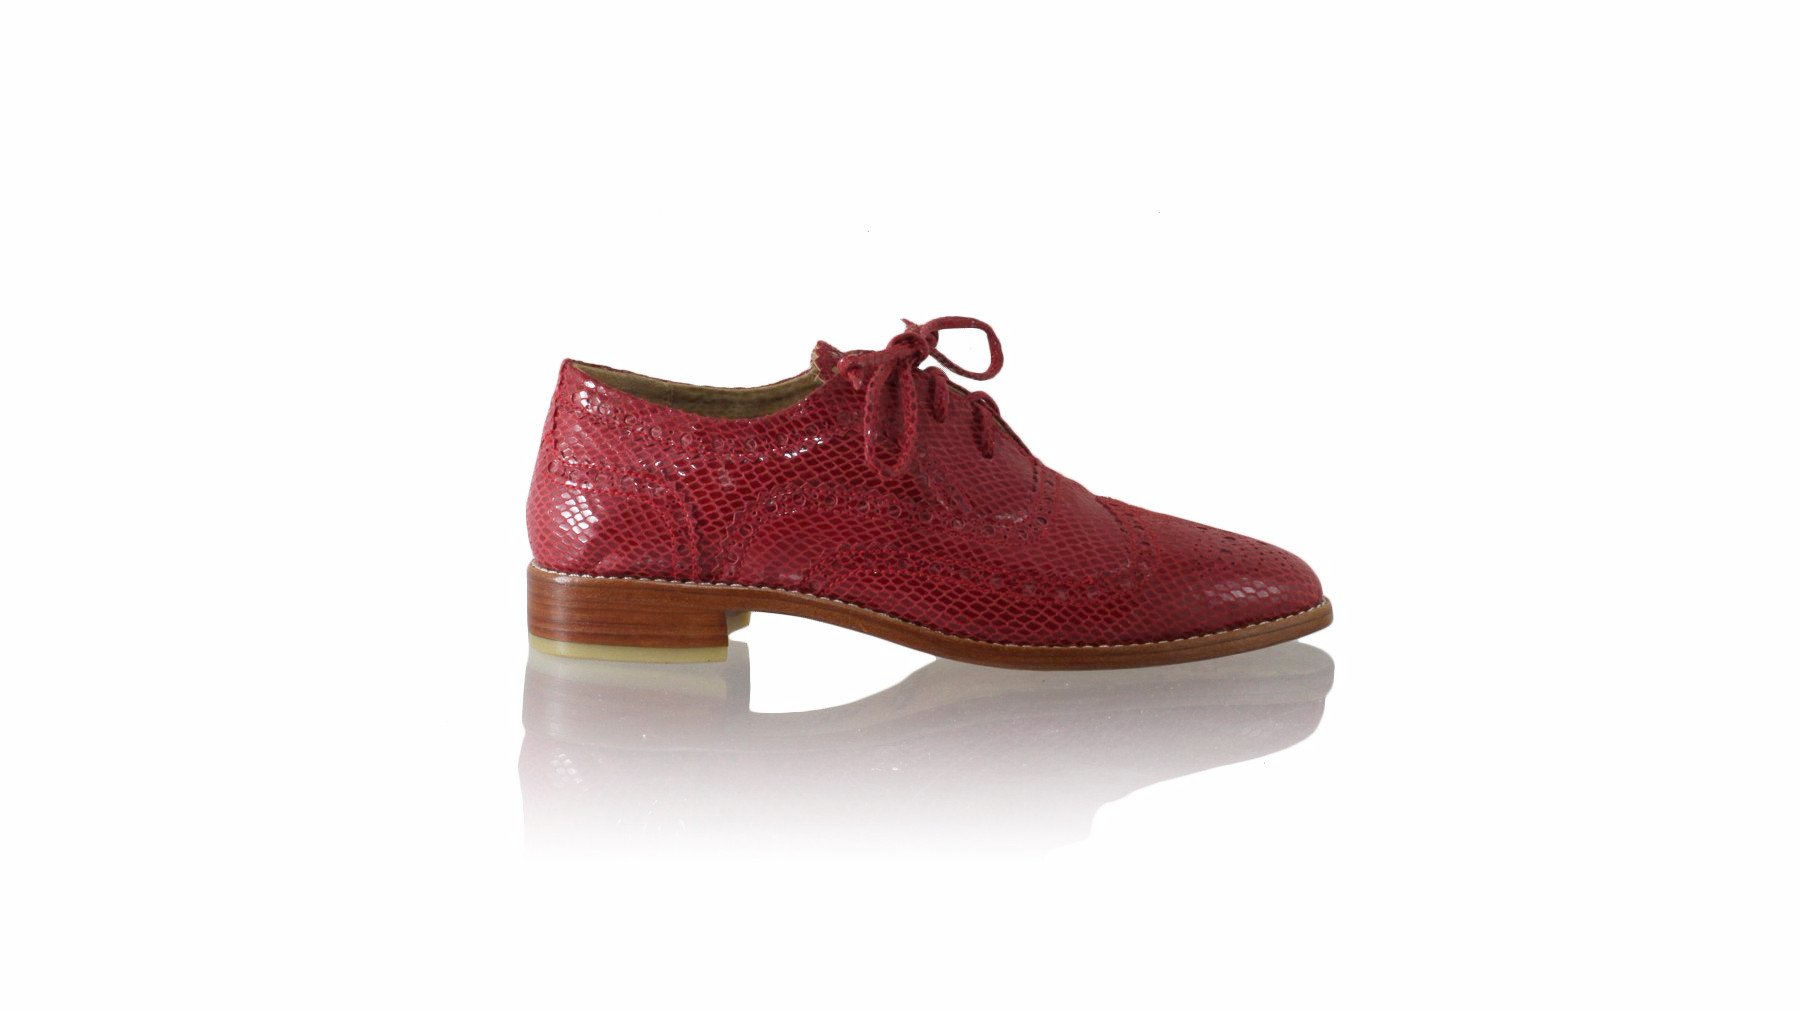 Leather-shoes-Oxford 25mm Flat - Red Snake Print-flats laceup-NILUH DJELANTIK-NILUH DJELANTIK